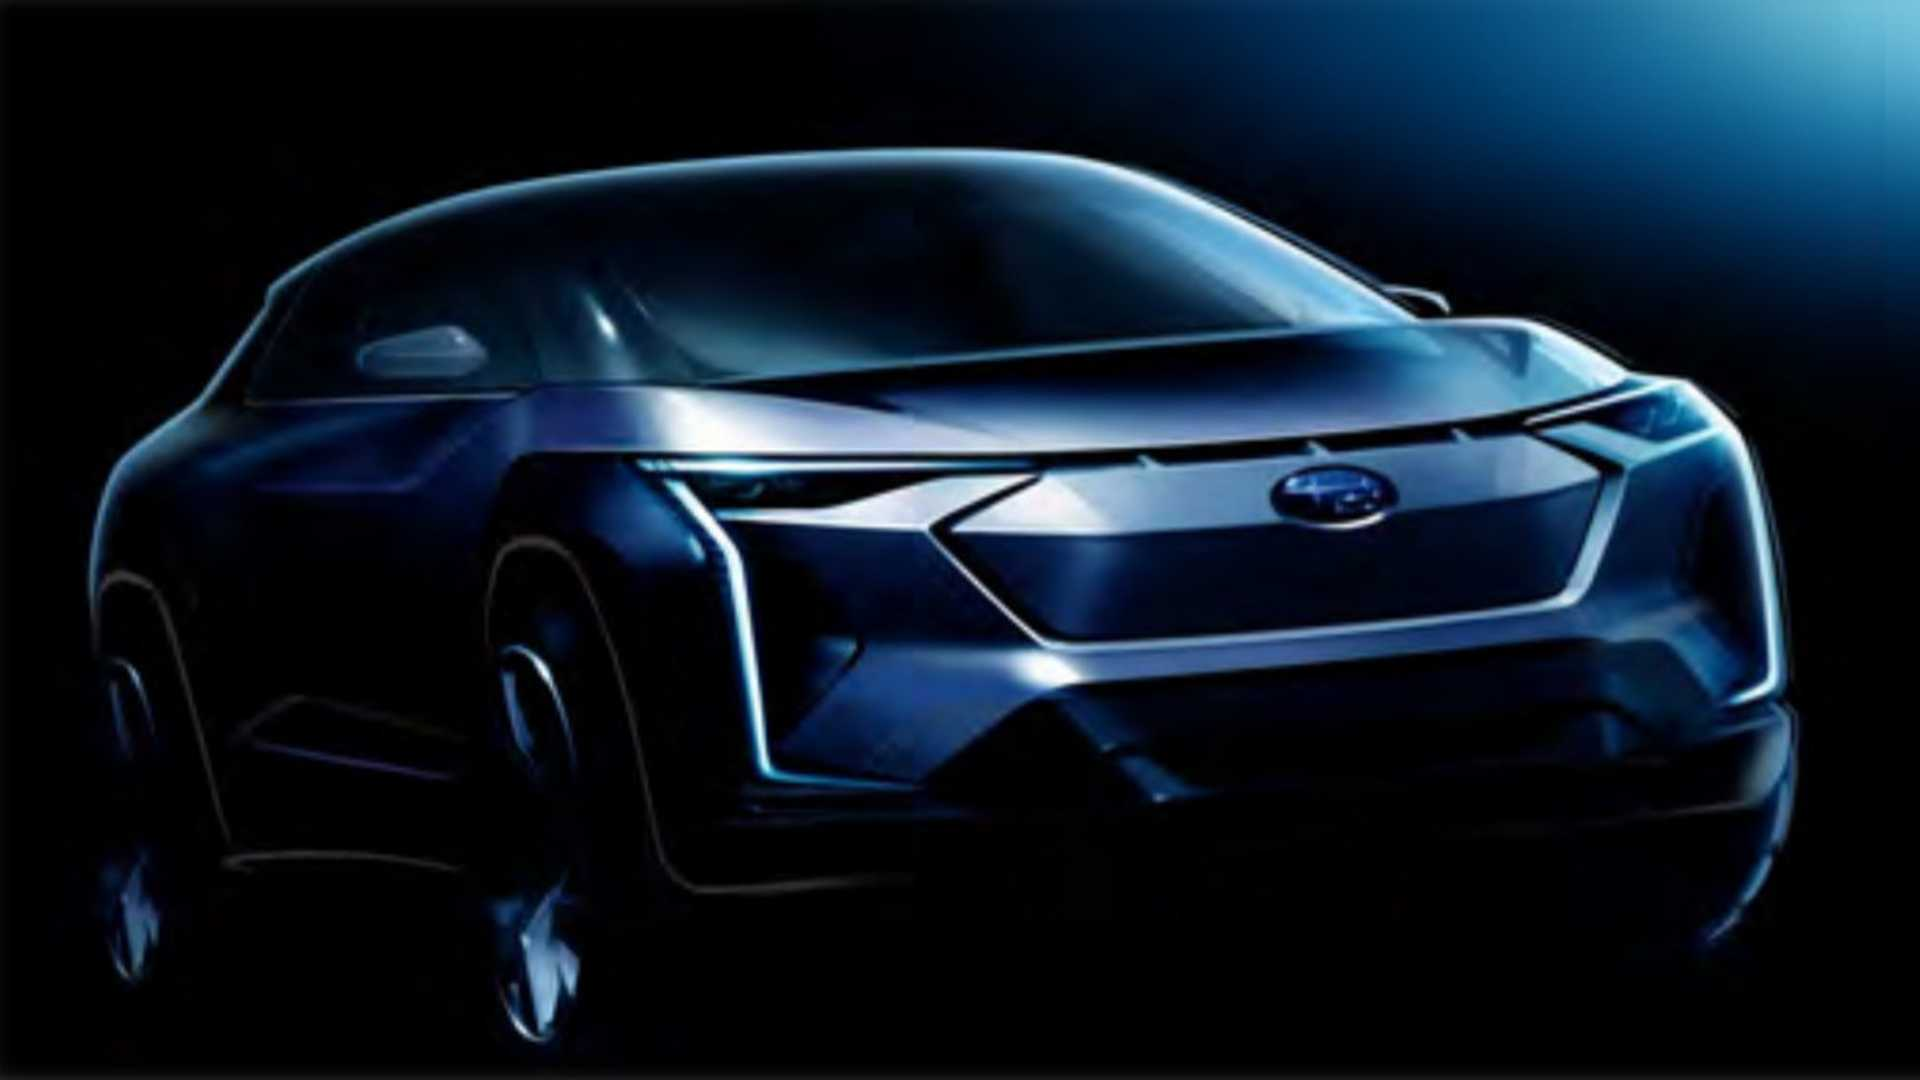 Subaru has unveiled its first fully electric car, a C-class crossover SUV named the Solterra after Latin words 'sol' for the Sun and 'terra' for the Earth. Availability is expected in multiple countries in mid-2022.